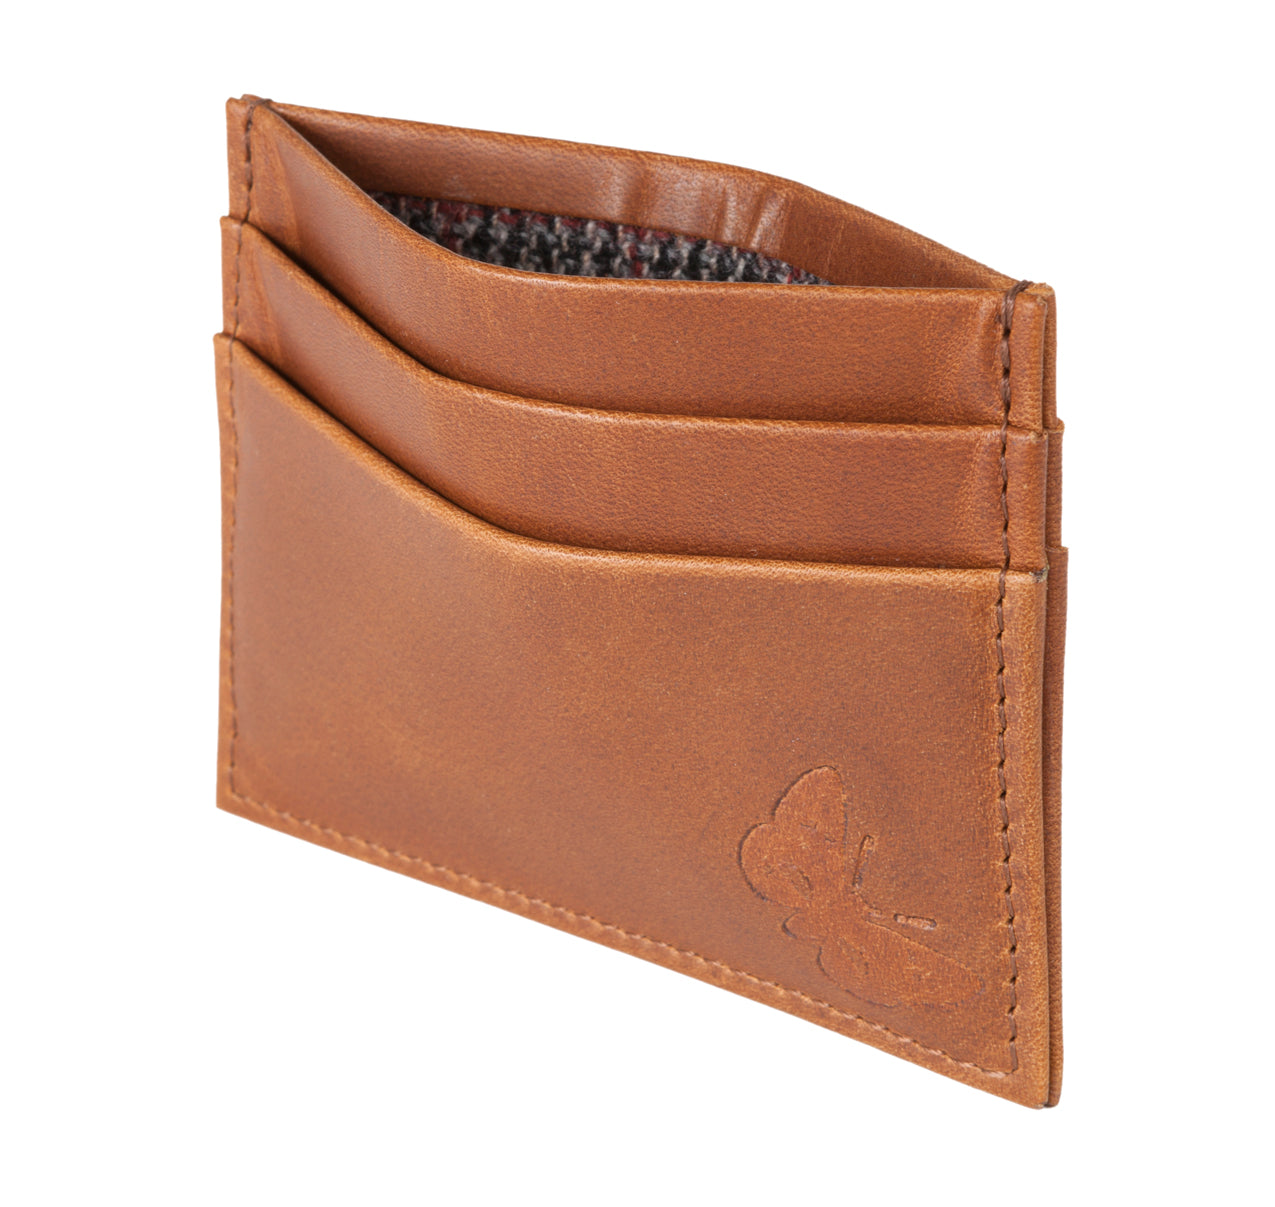 Regent Leather Card Case - Rusty Brown